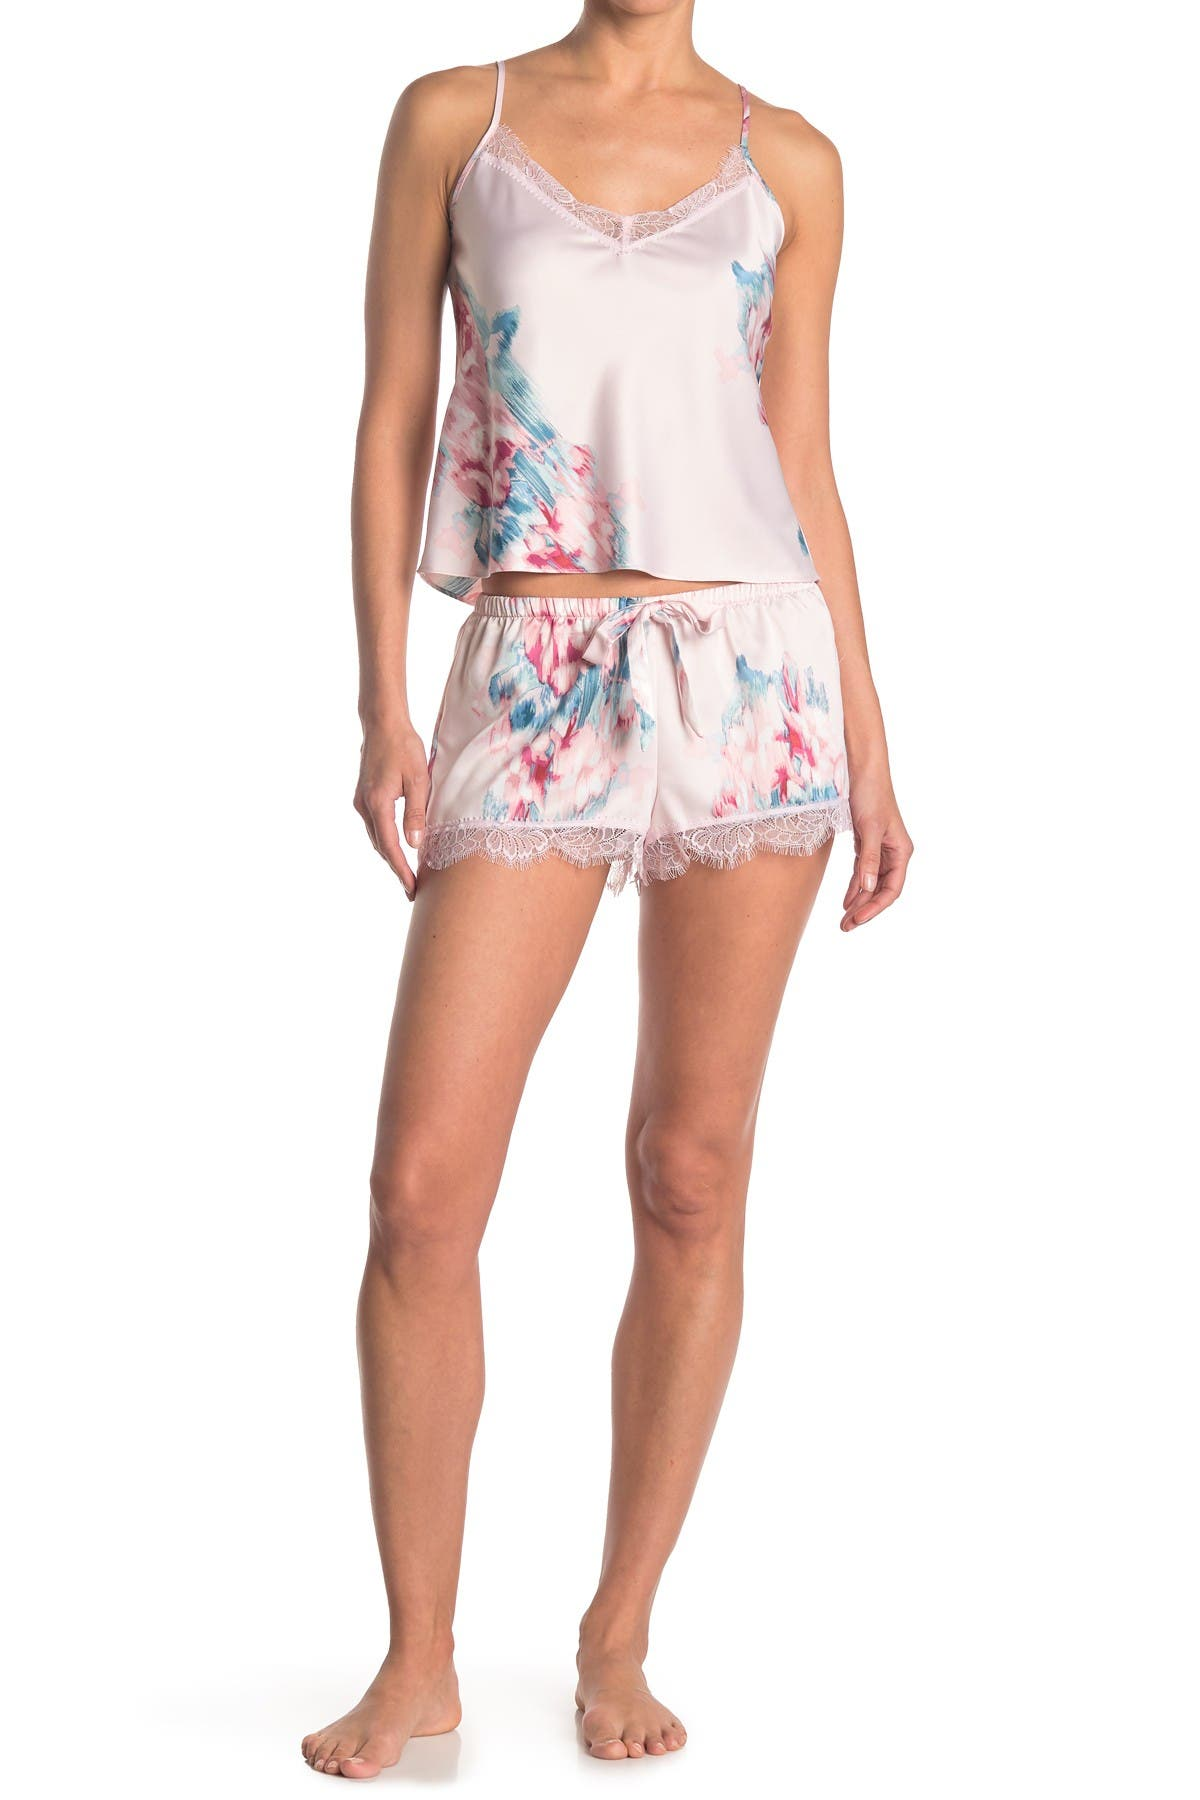 Image of In Bloom by Jonquil Floral Lace Trim Satin Camisole & Shorts 2-Piece Pajama Set